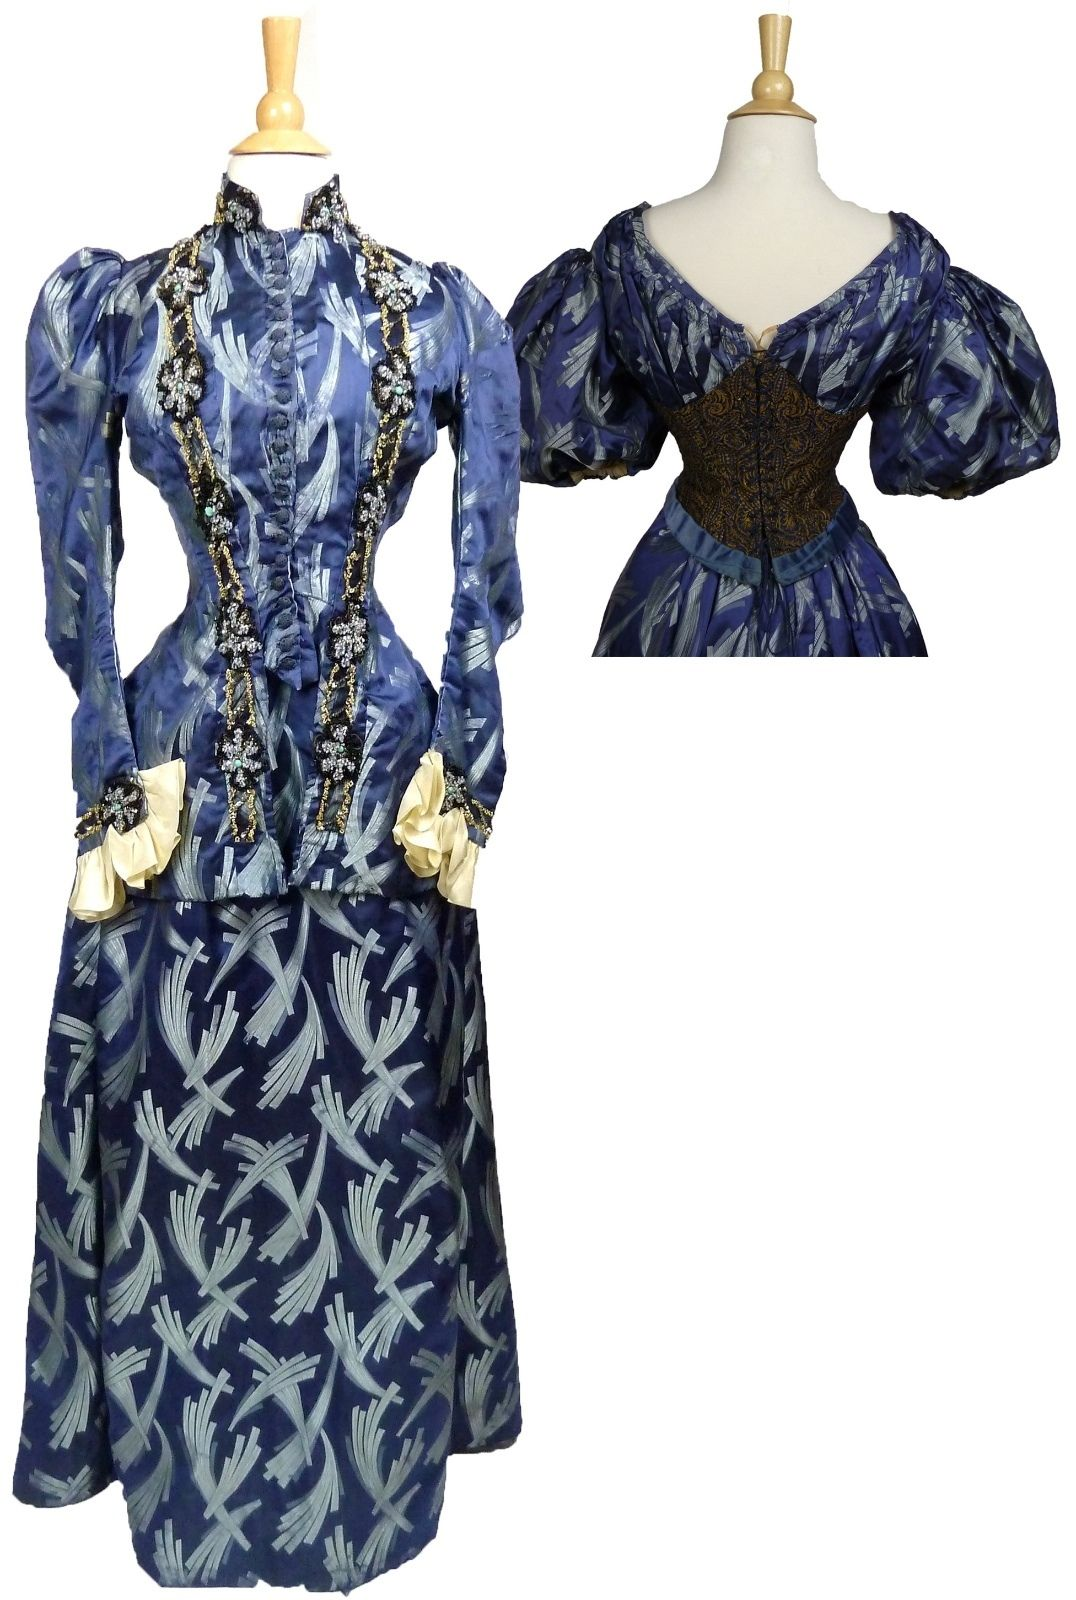 Blue silk brocade gown with matching beaded day and evening bodices